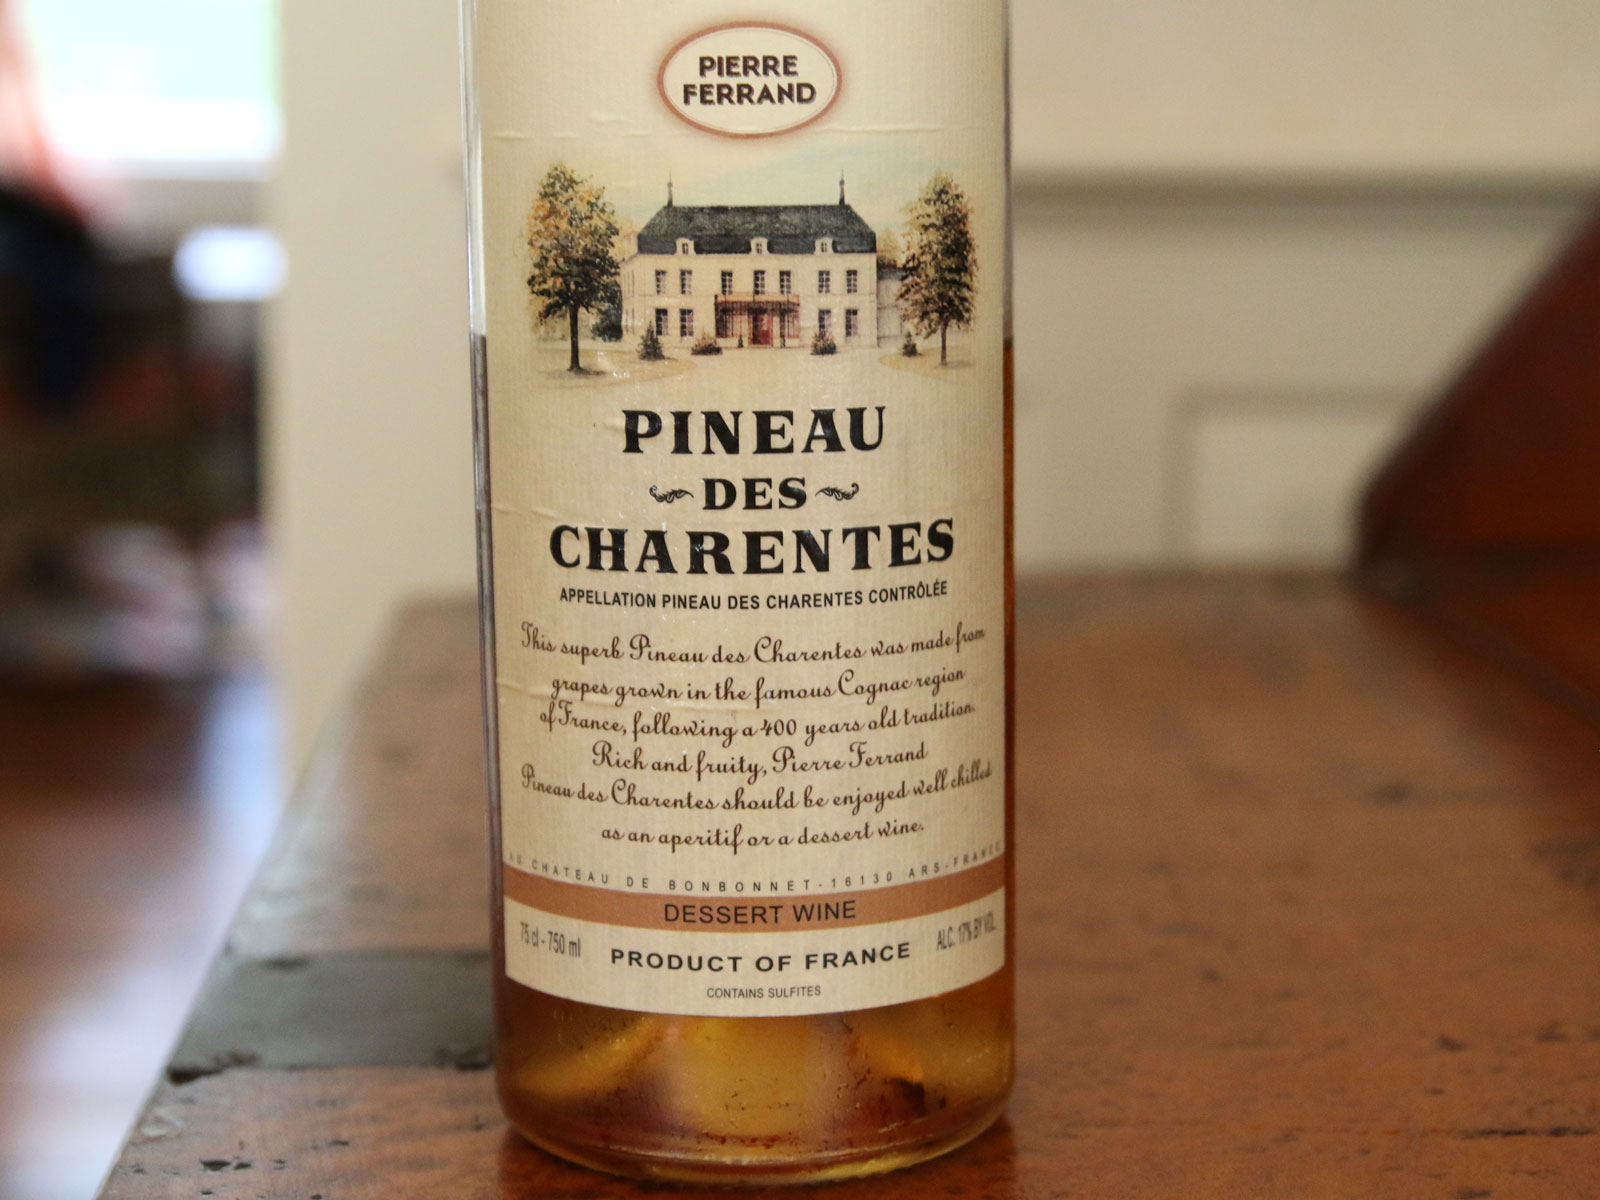 Pinault des charentes cocktail dresses